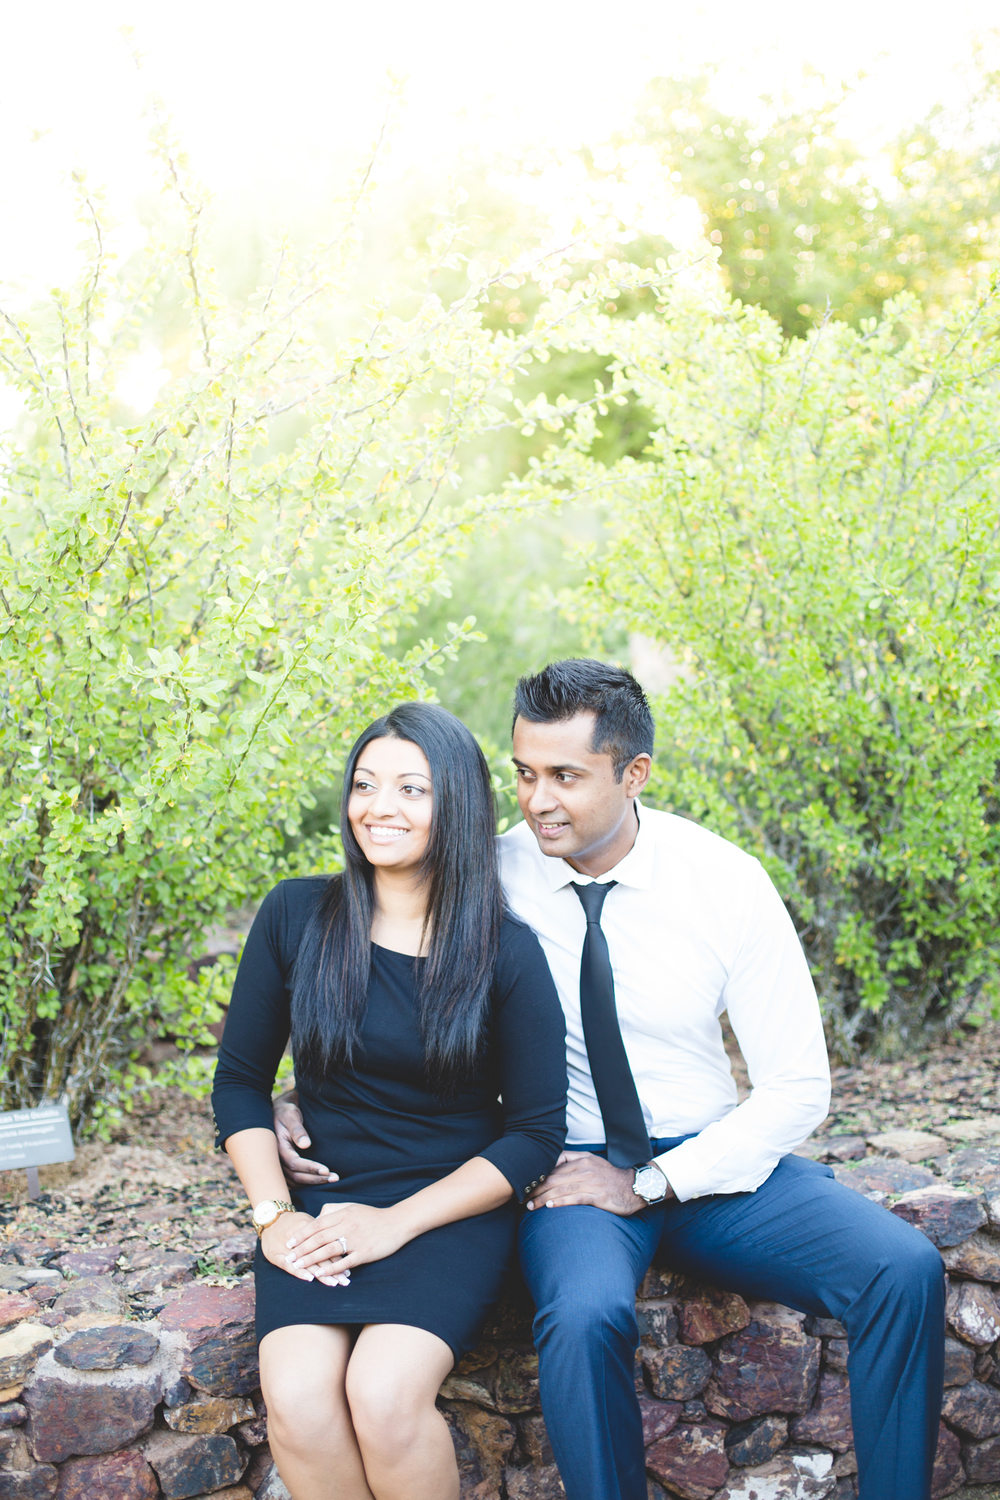 vic-iju-beautiful-backlit-botanical-garden-engagement-shoot